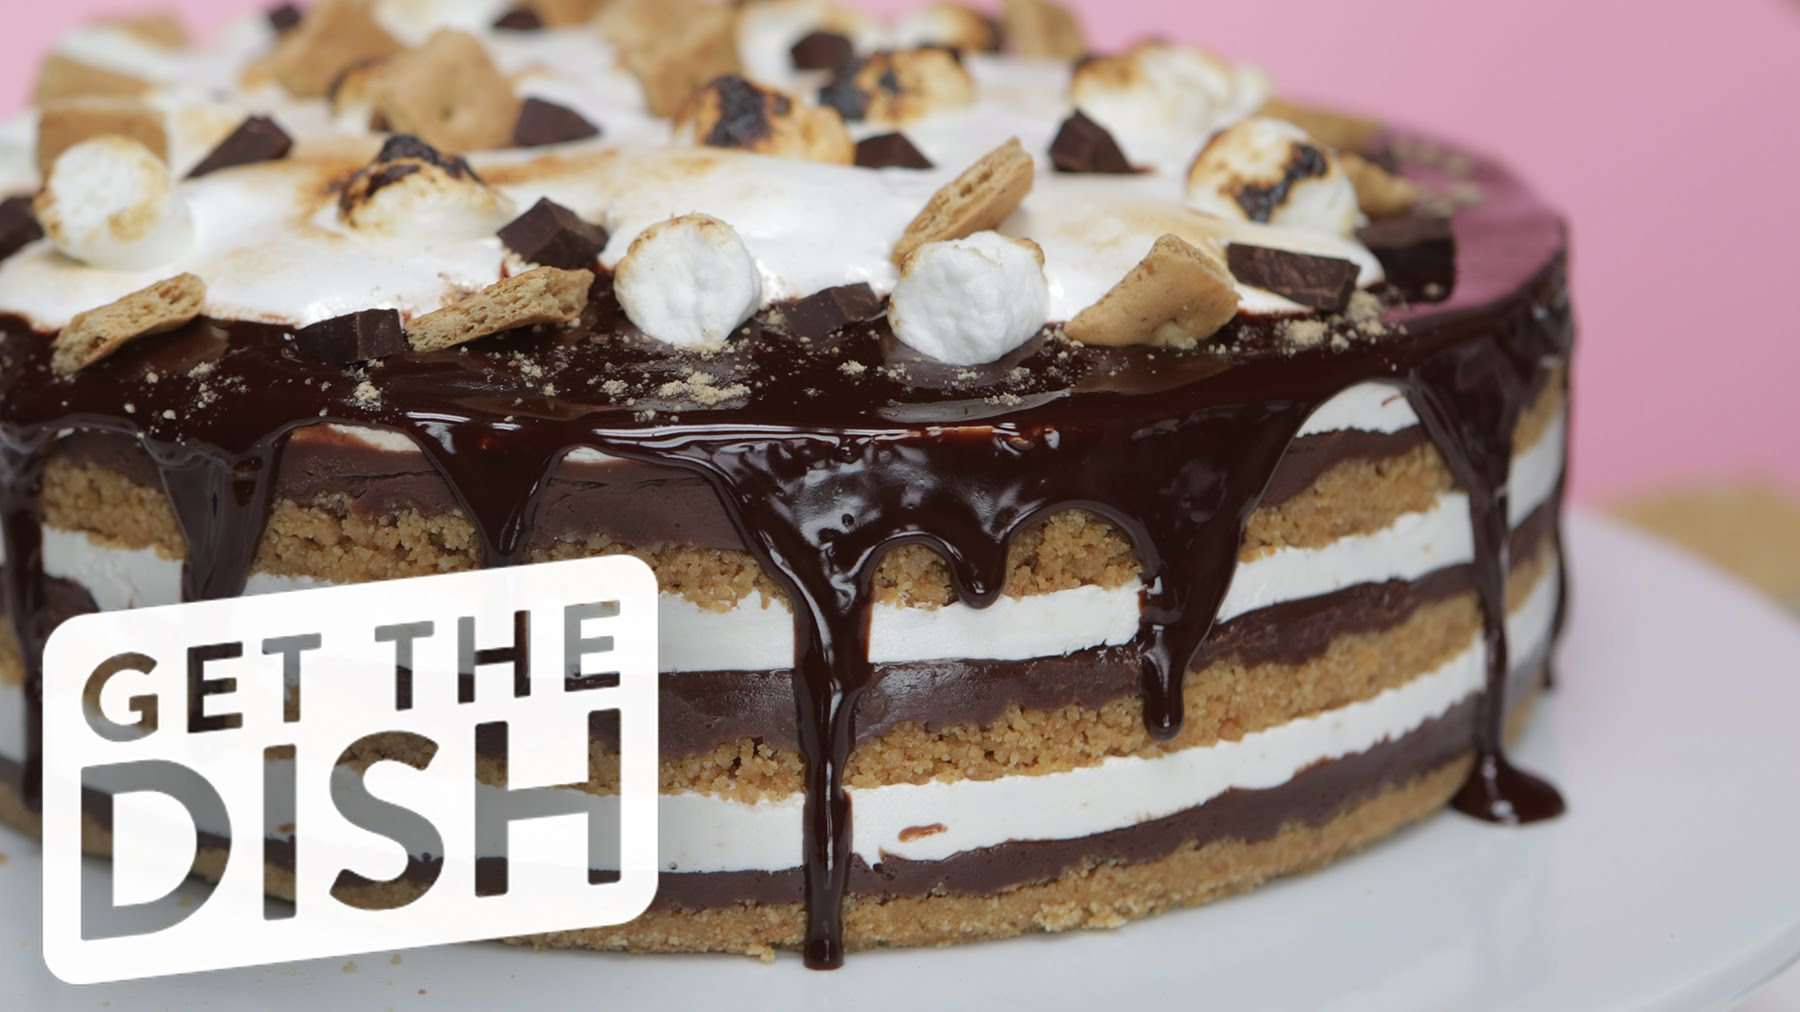 No Need For An Oven For This No-Bake S'mores Cake